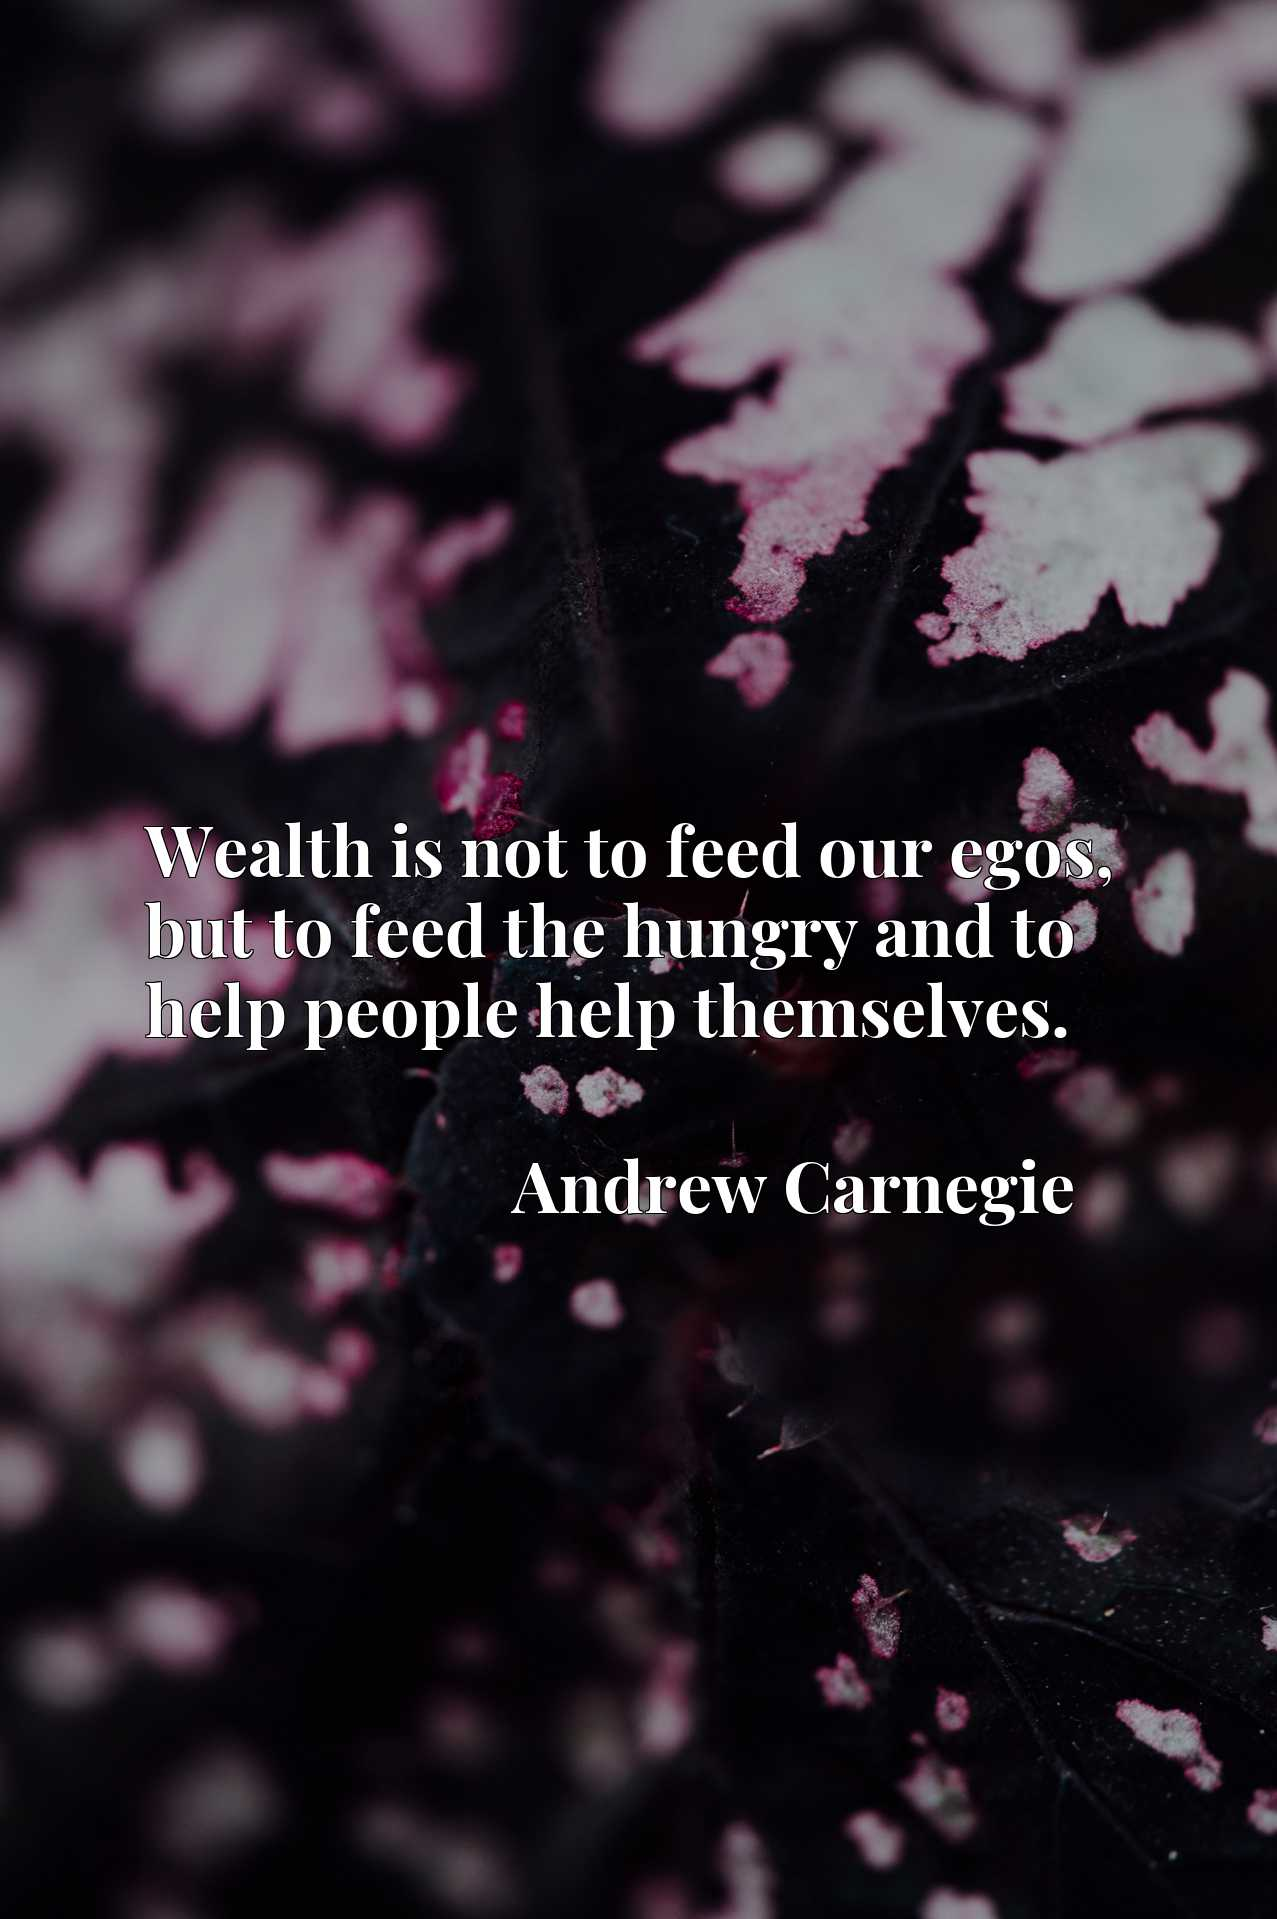 Wealth is not to feed our egos, but to feed the hungry and to help people help themselves.